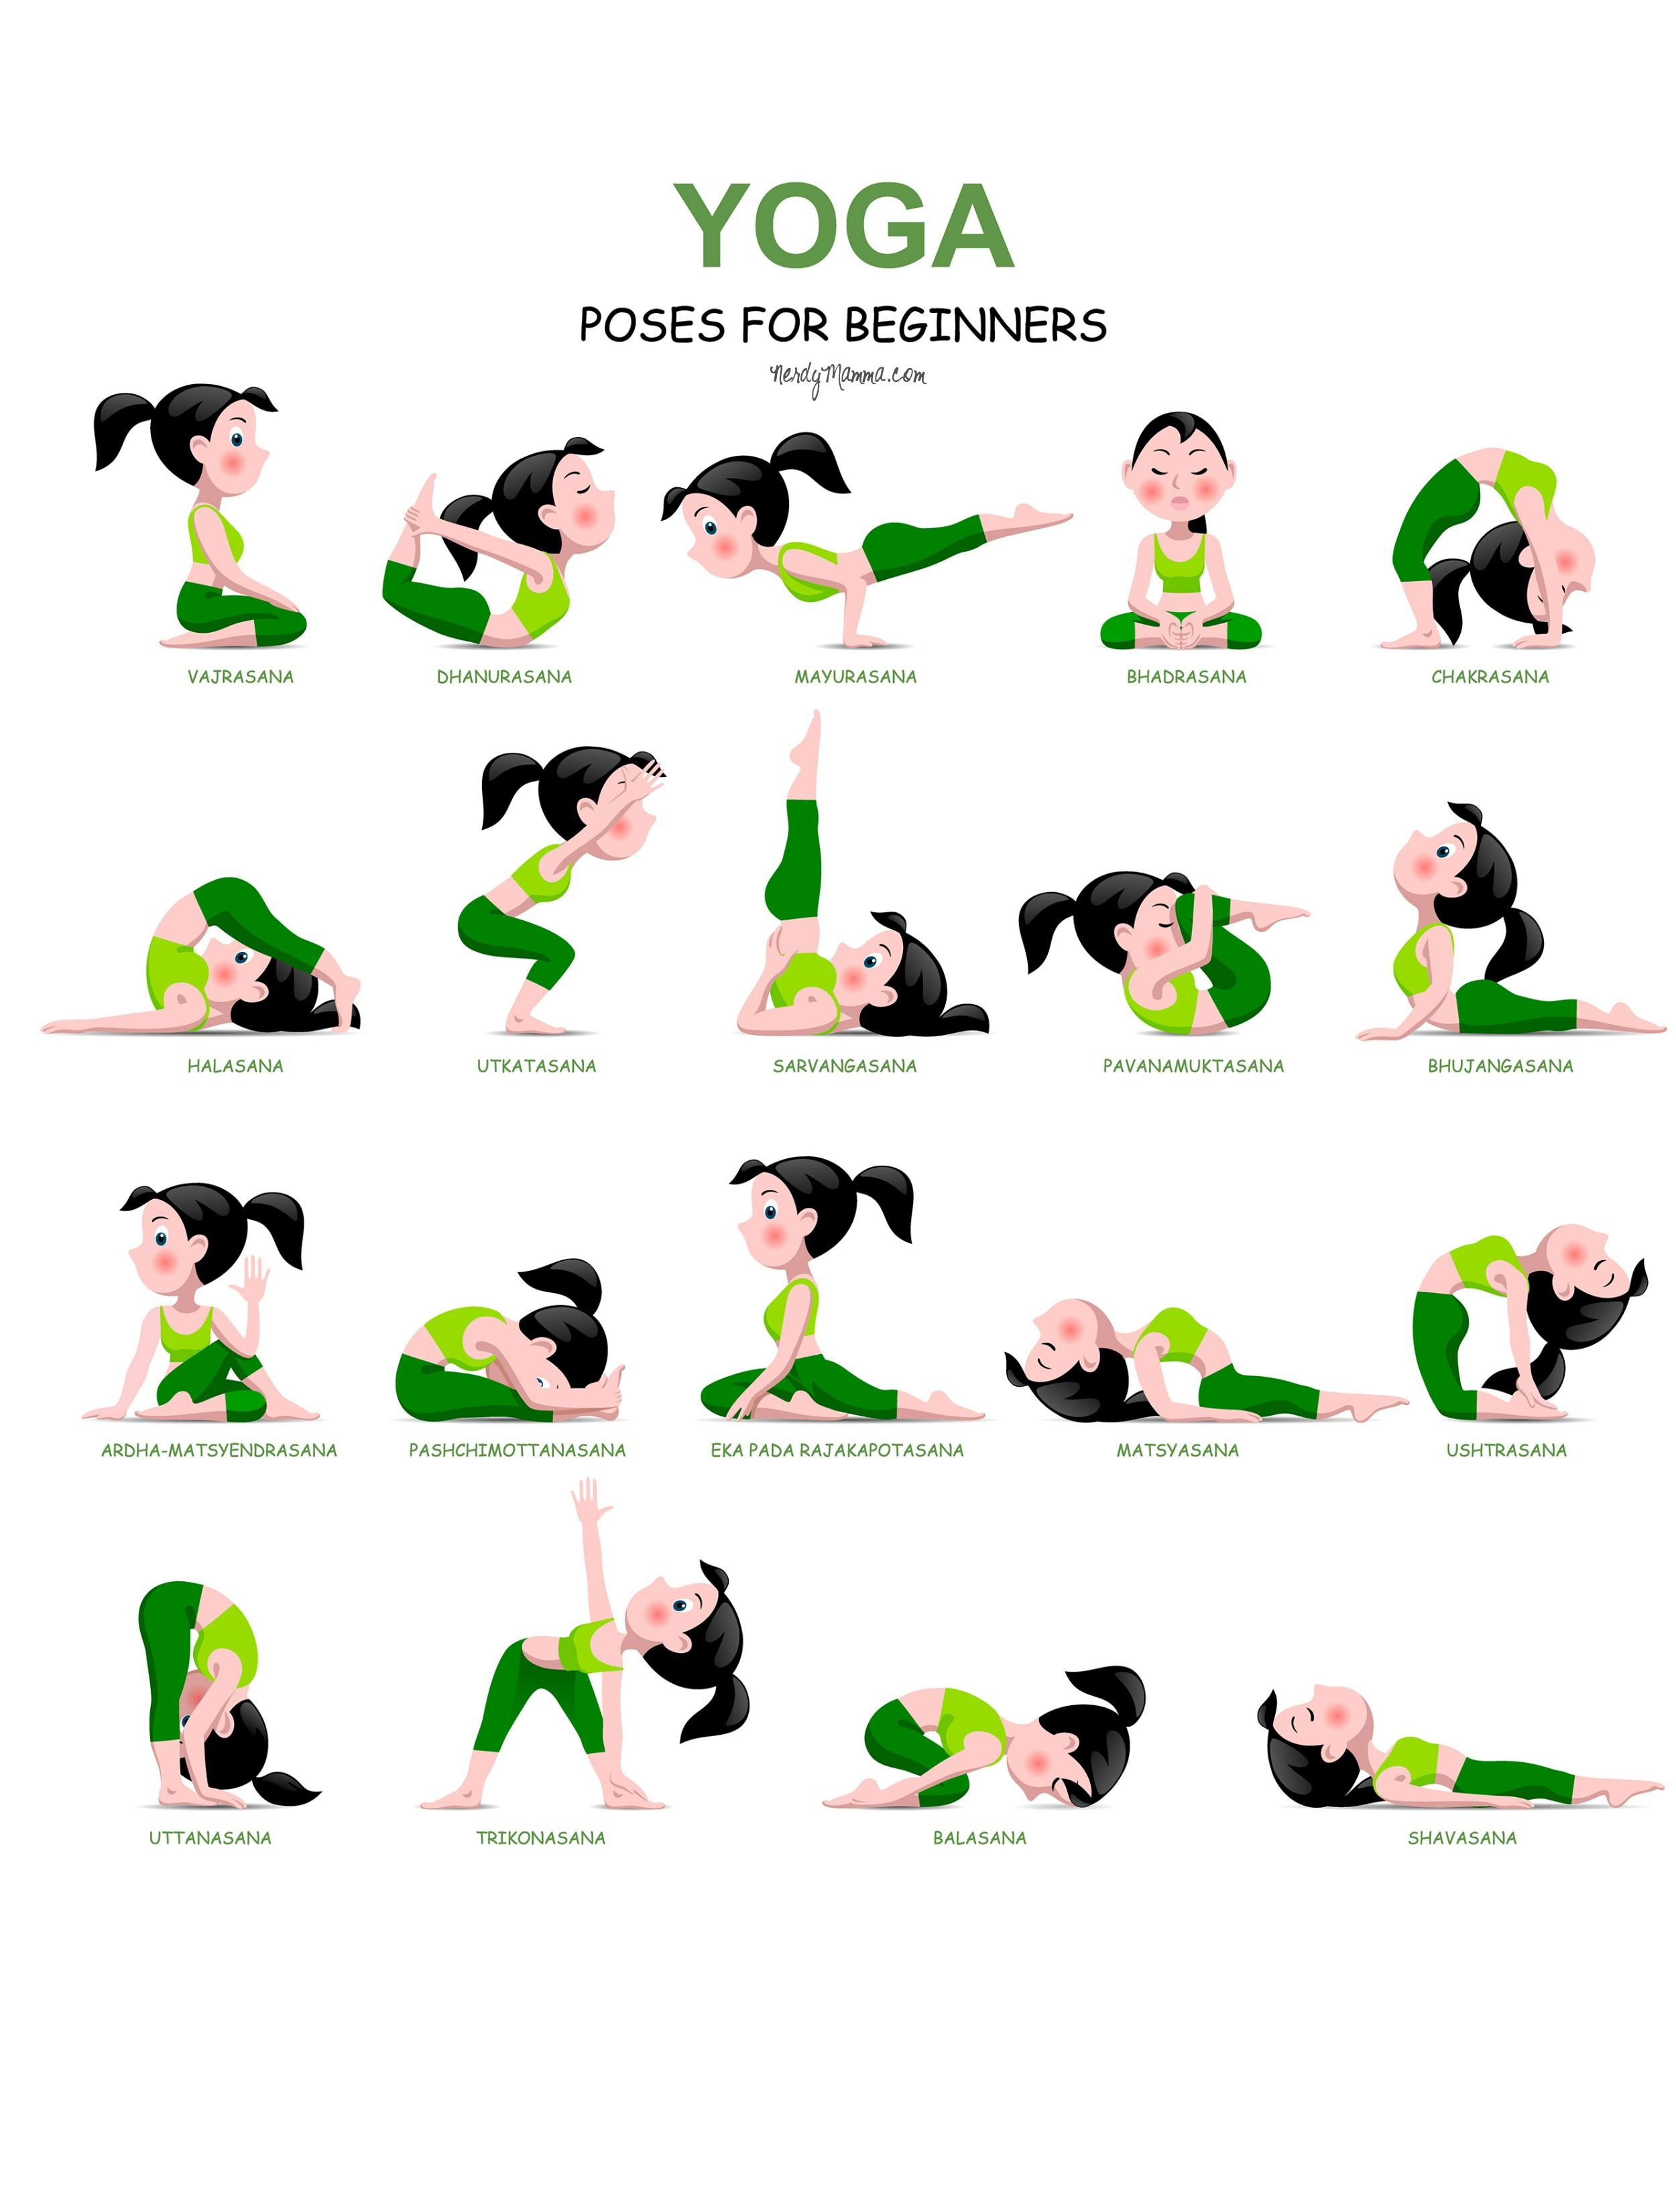 20 Easy Yoga Poses For Beginners With A Free Printable … | Yoga And - Free Printable Yoga Poses